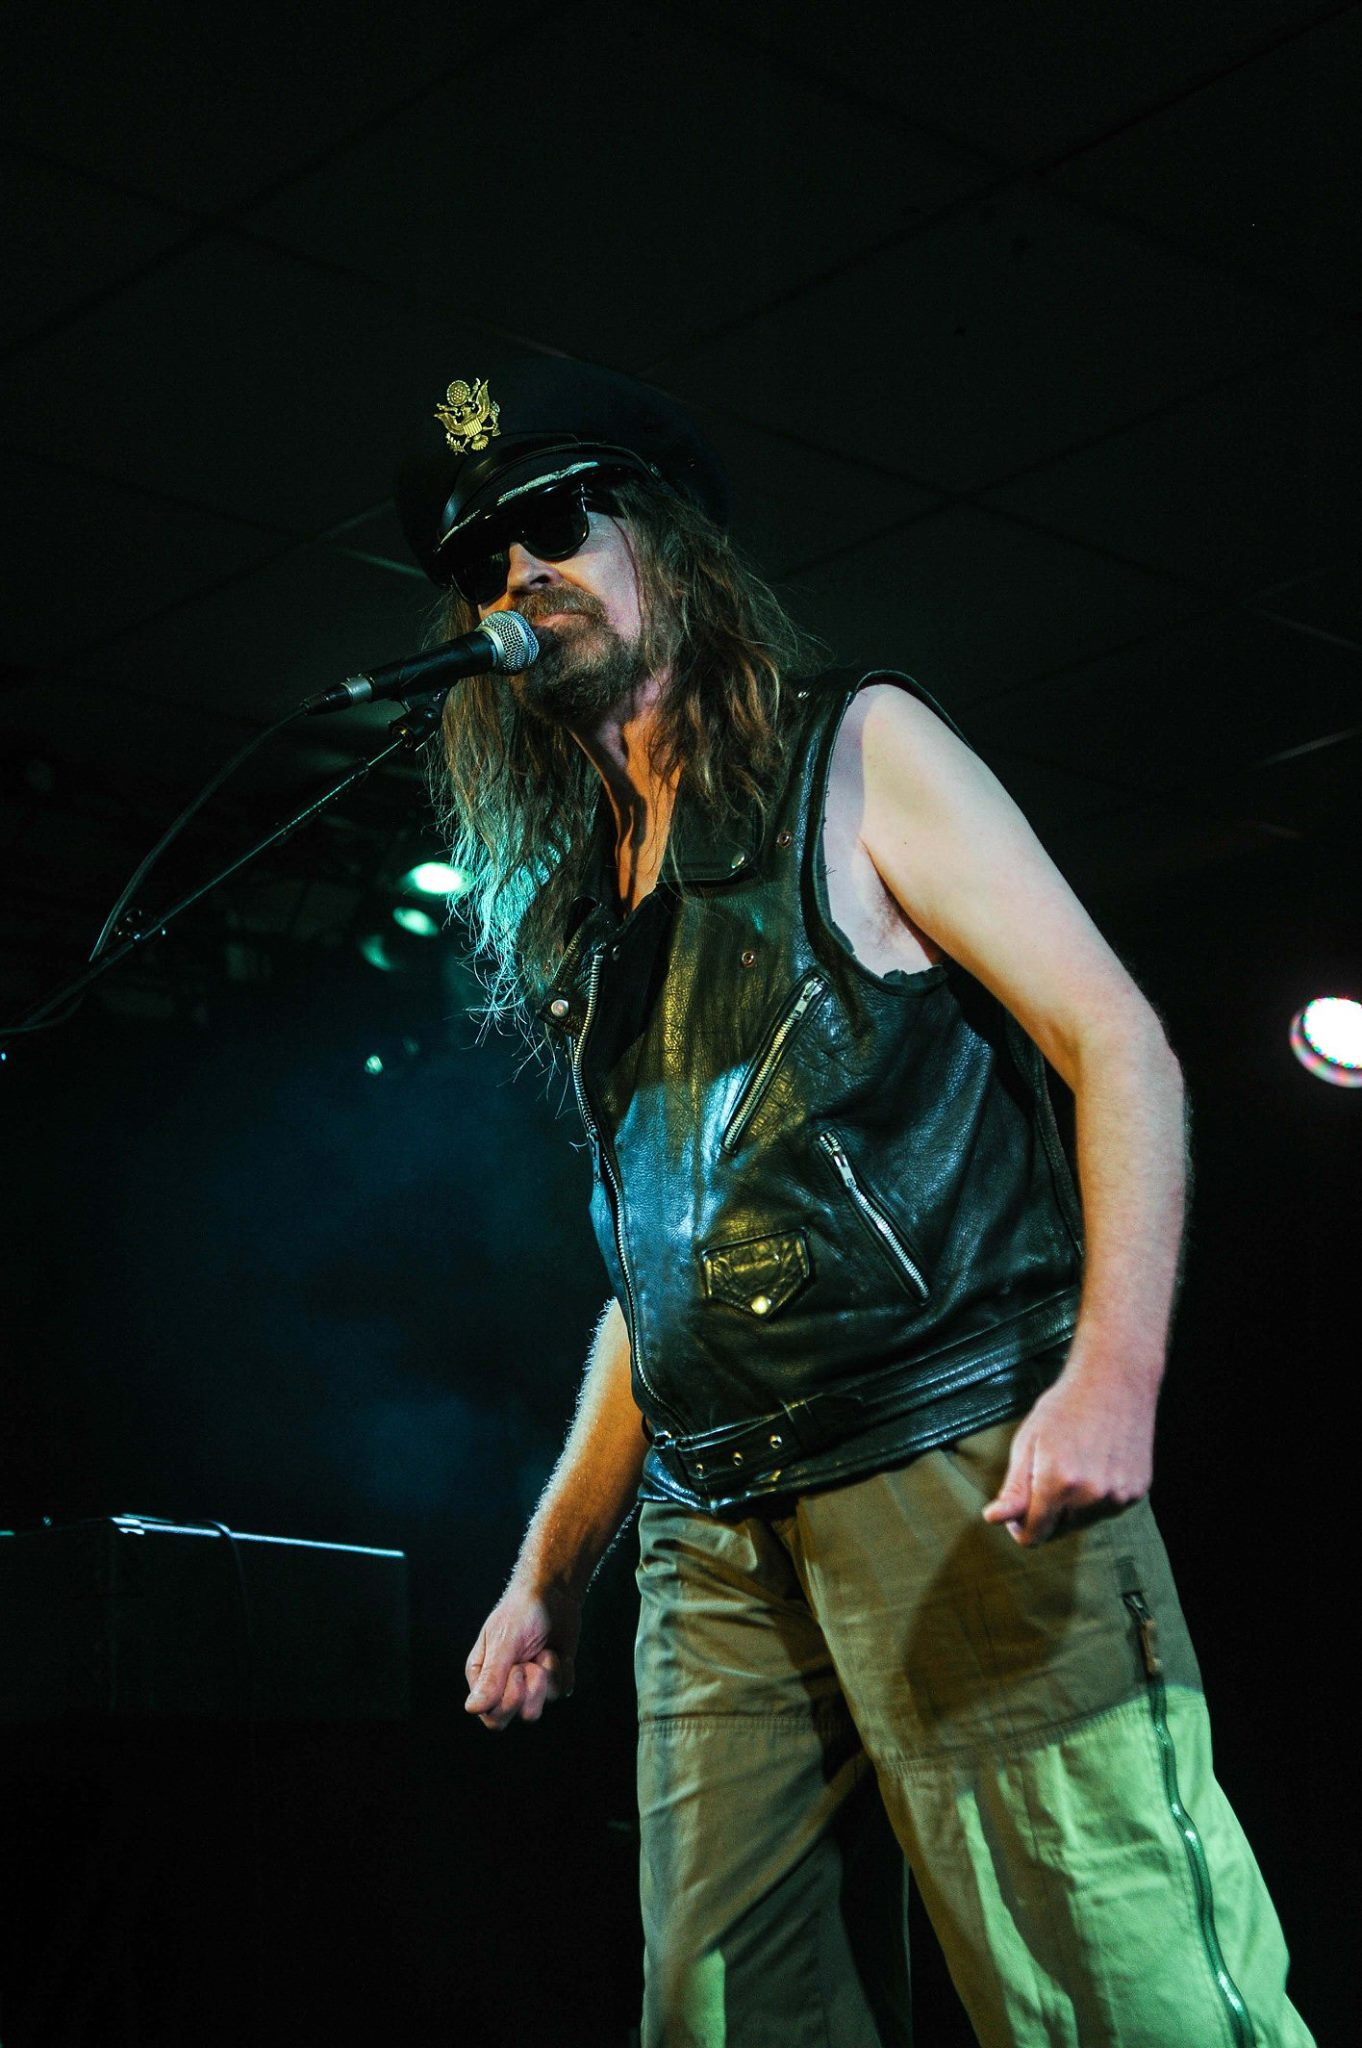 Julian Cope at the Lemon Tree May 2015 by Dod Morrison